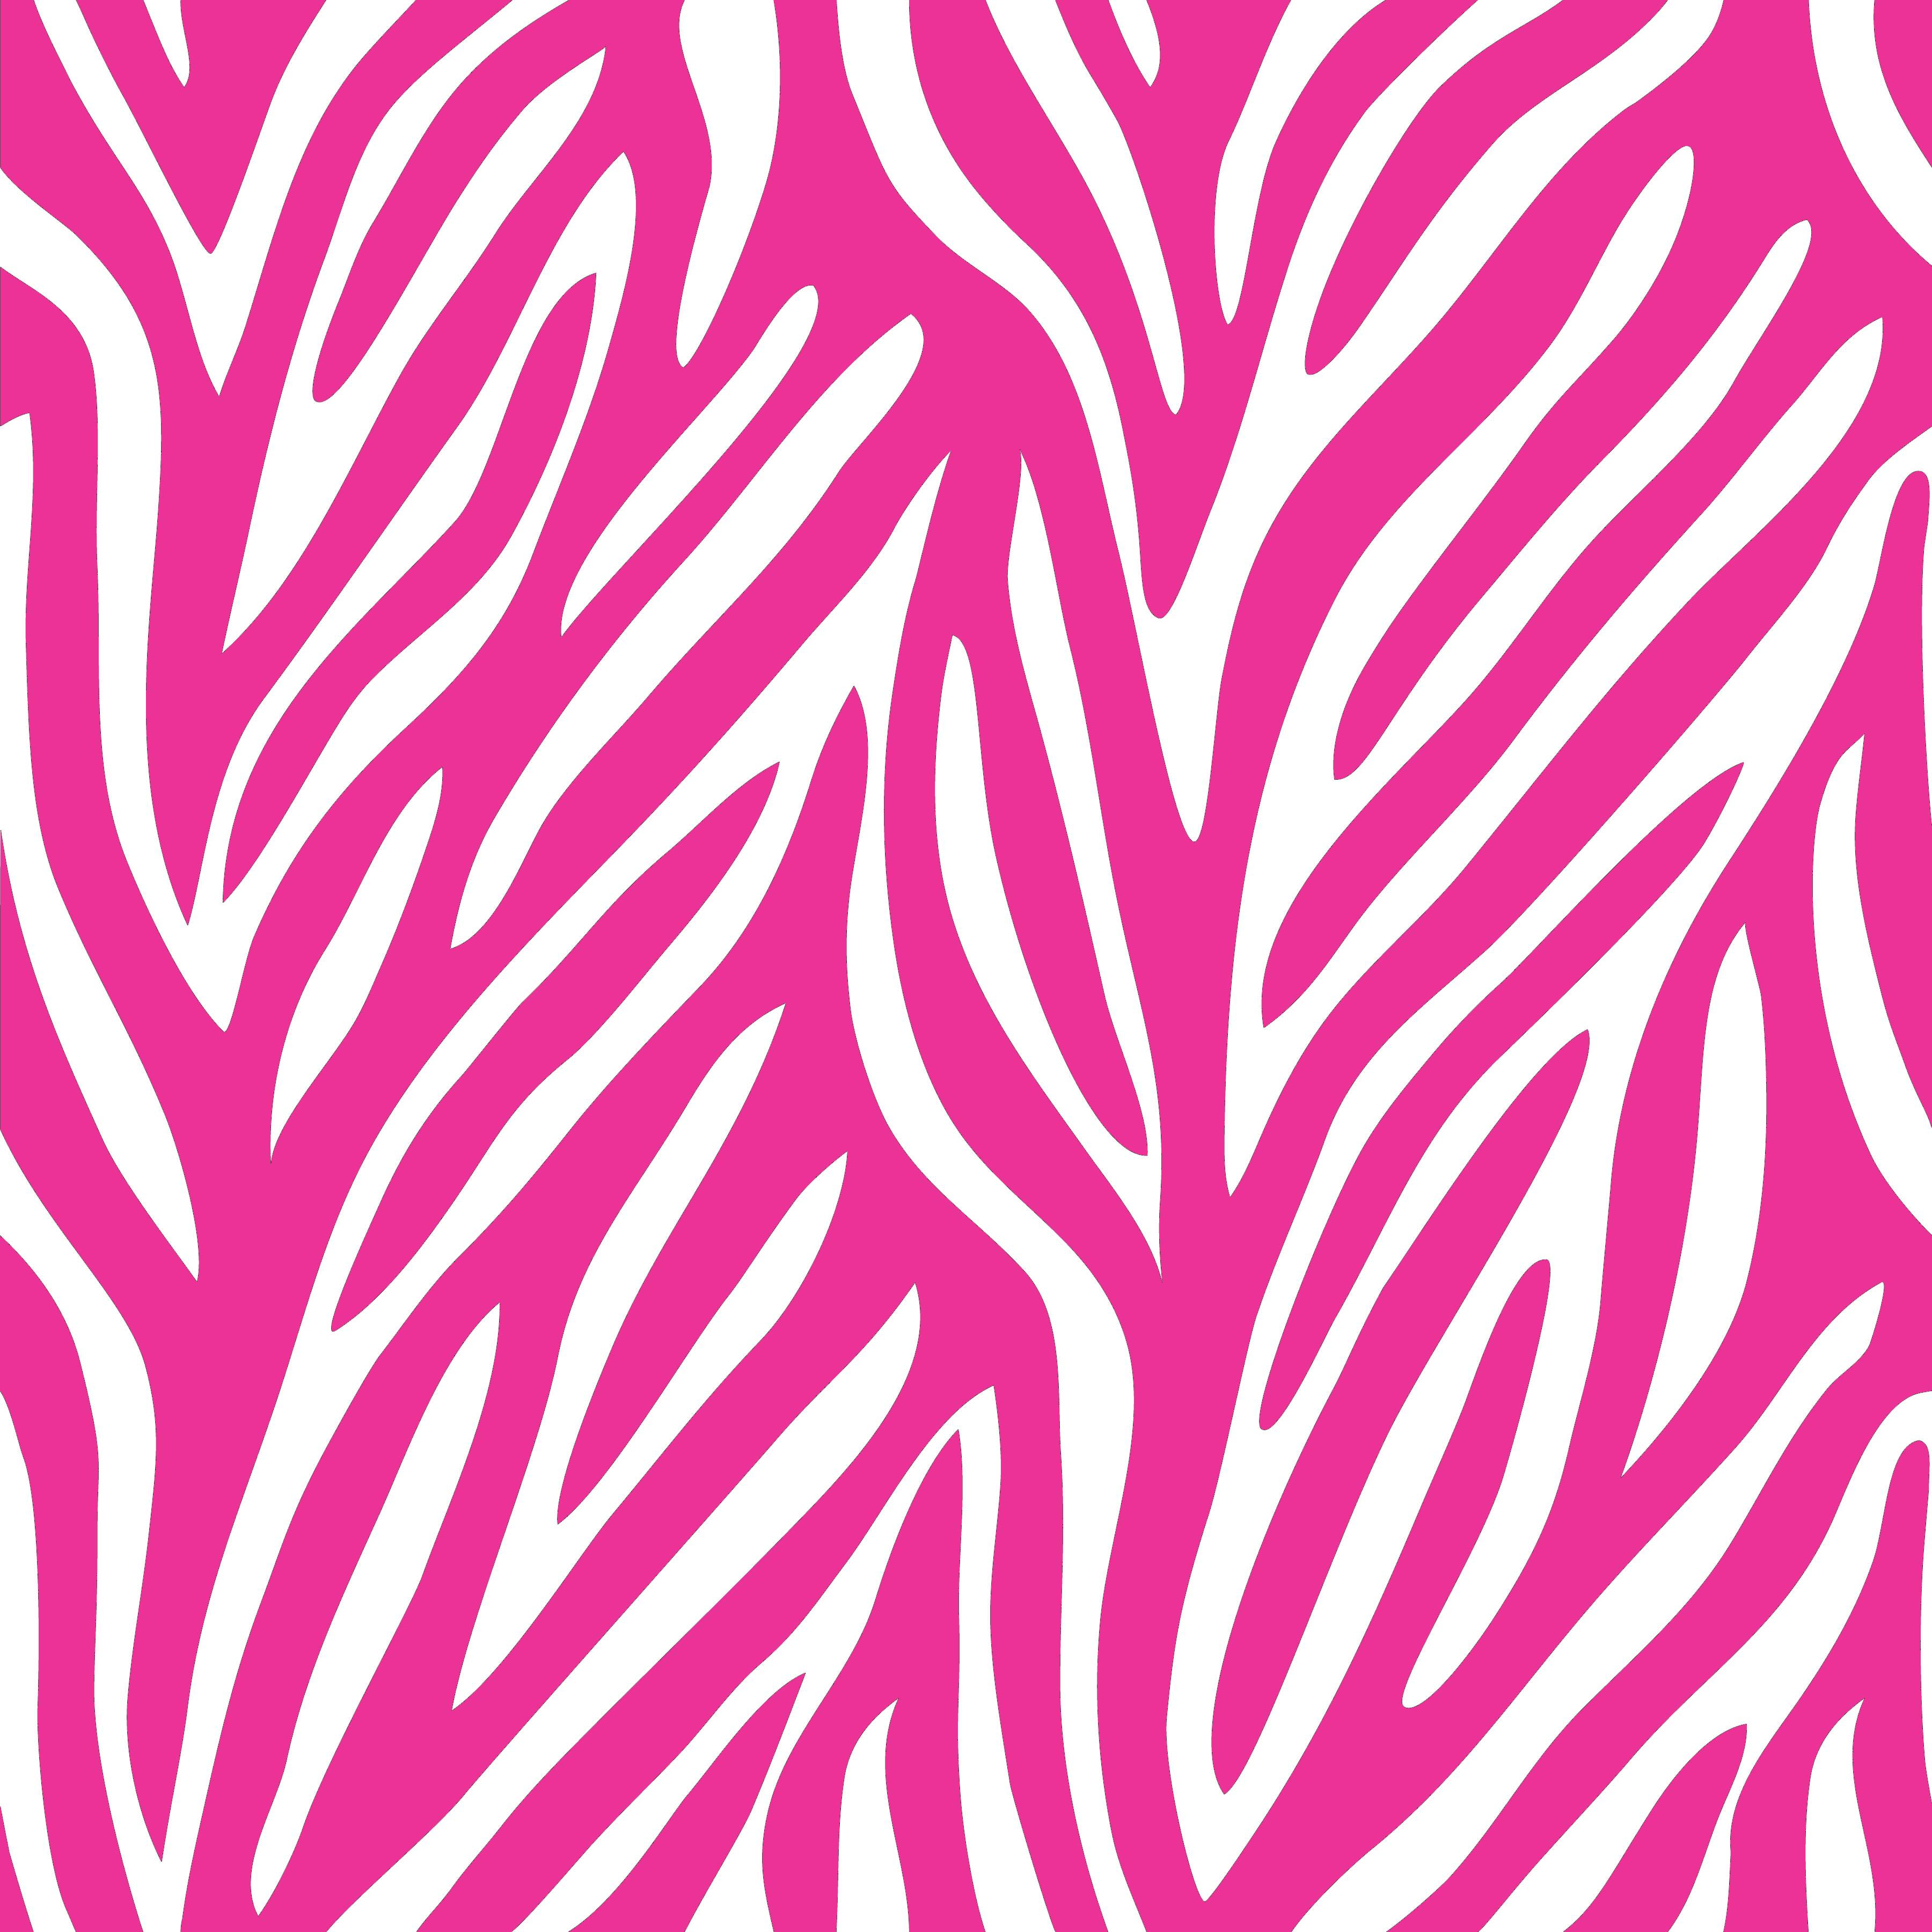 Seamless Pink Leopard Print Background Pattern 1 Clipart By Amanda Kate